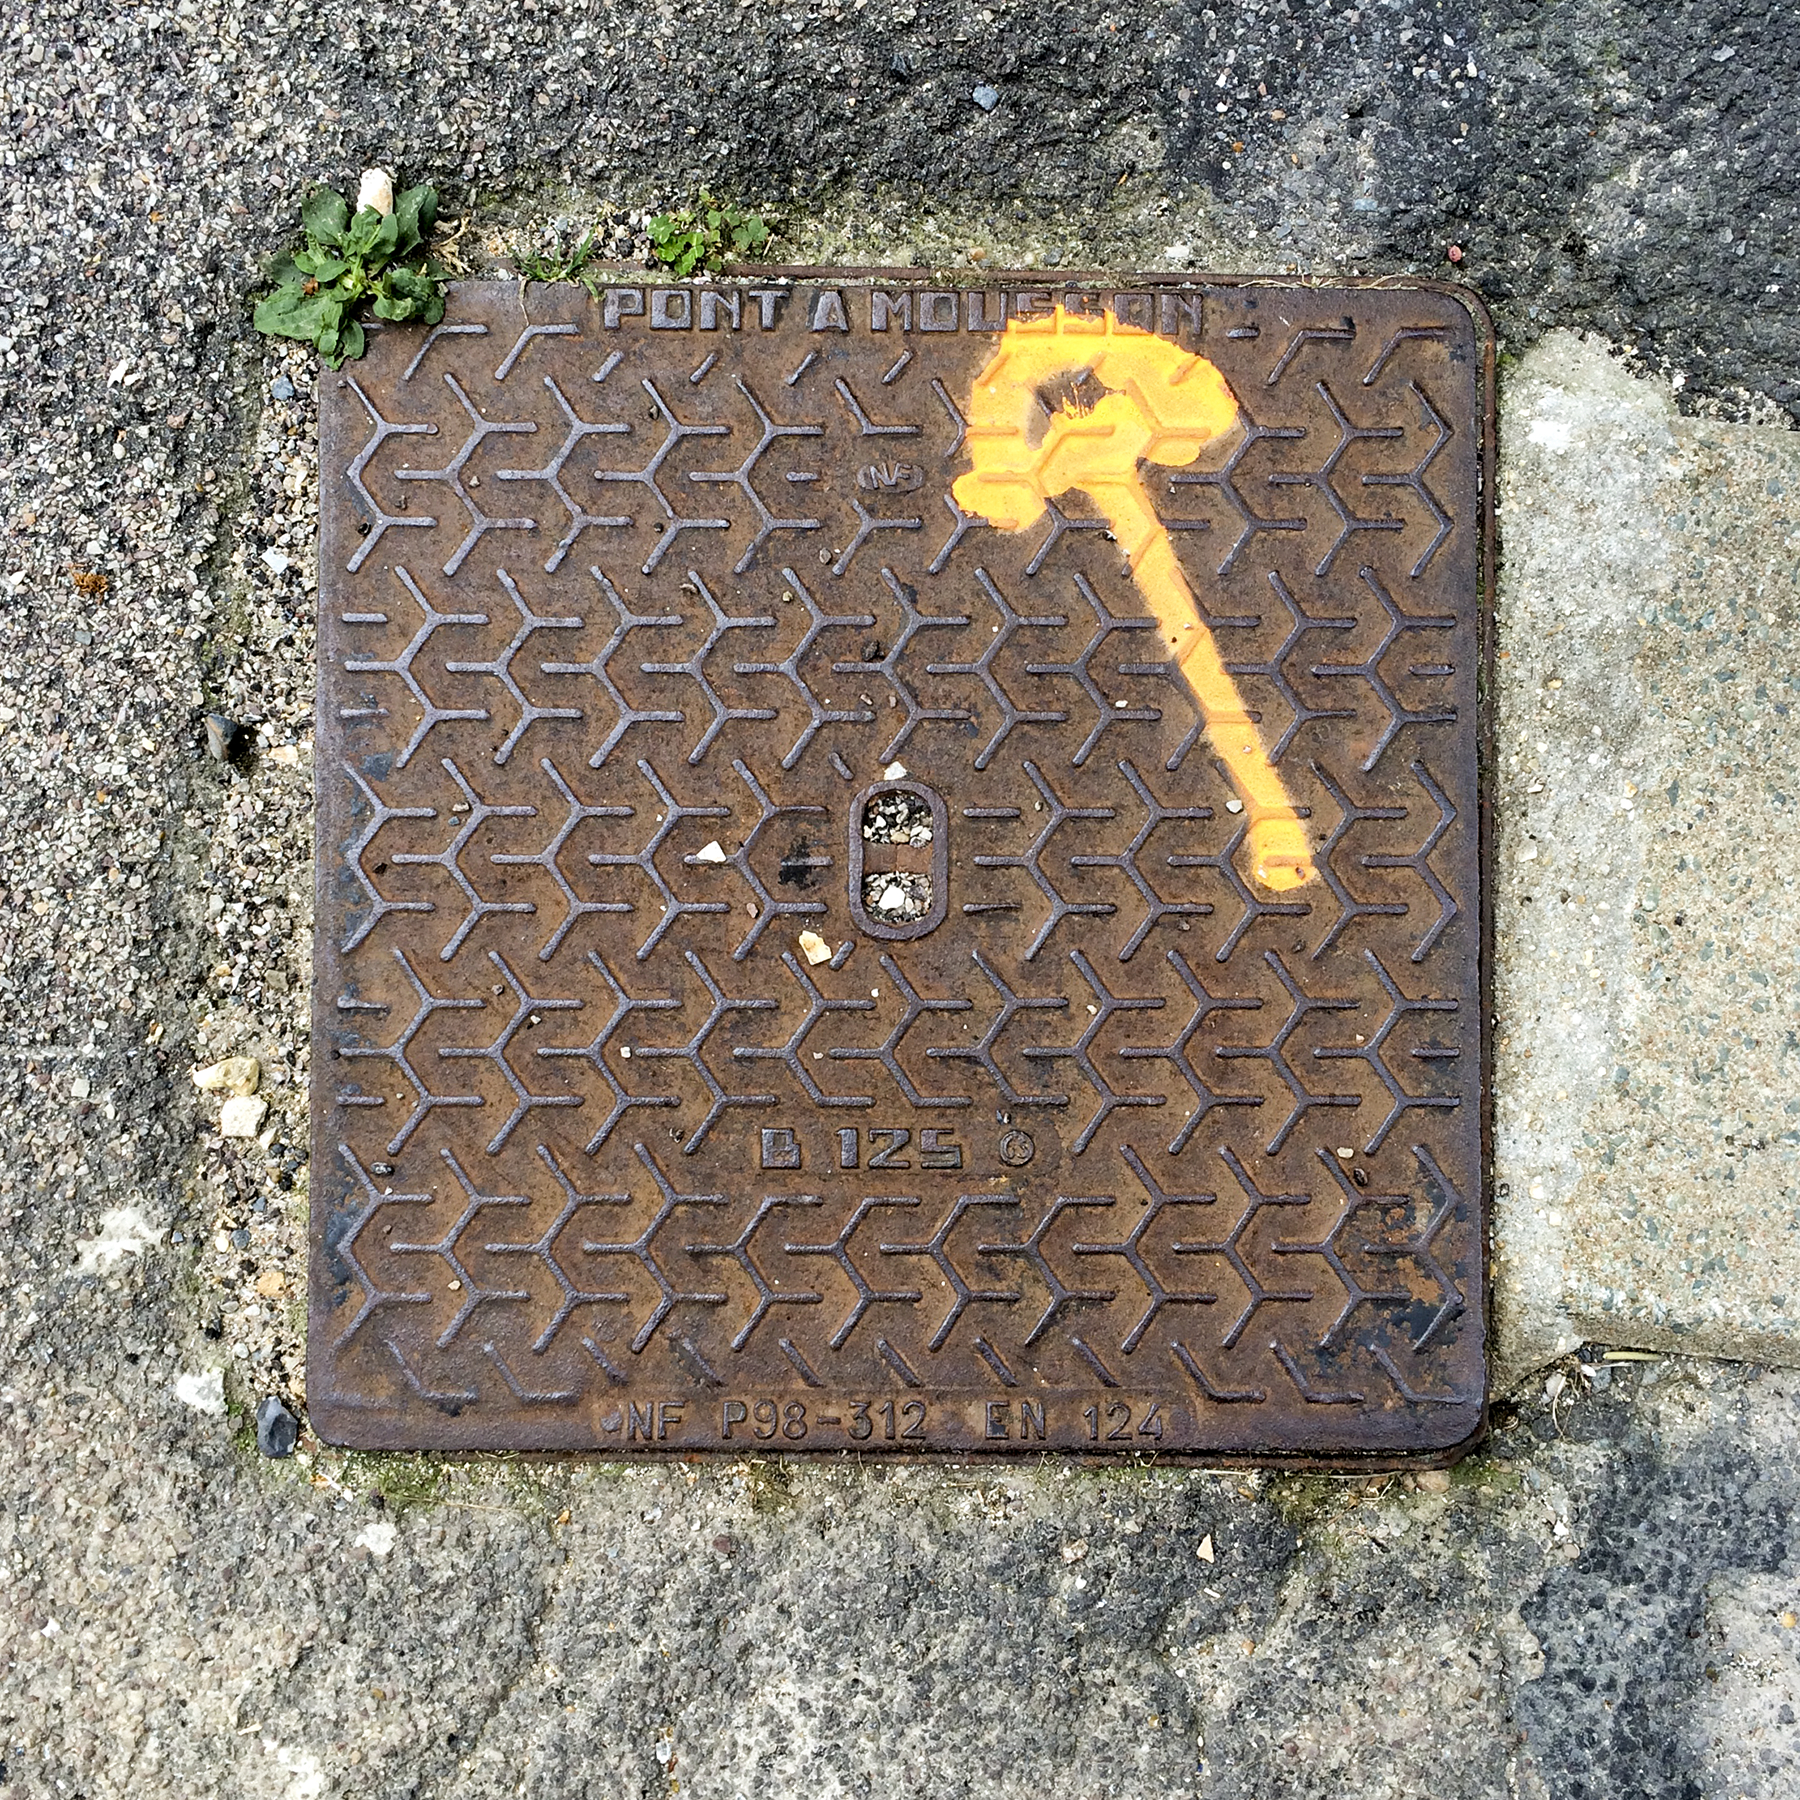 6th of 6 placeholder images: yellow arrow spraypainted on pavement